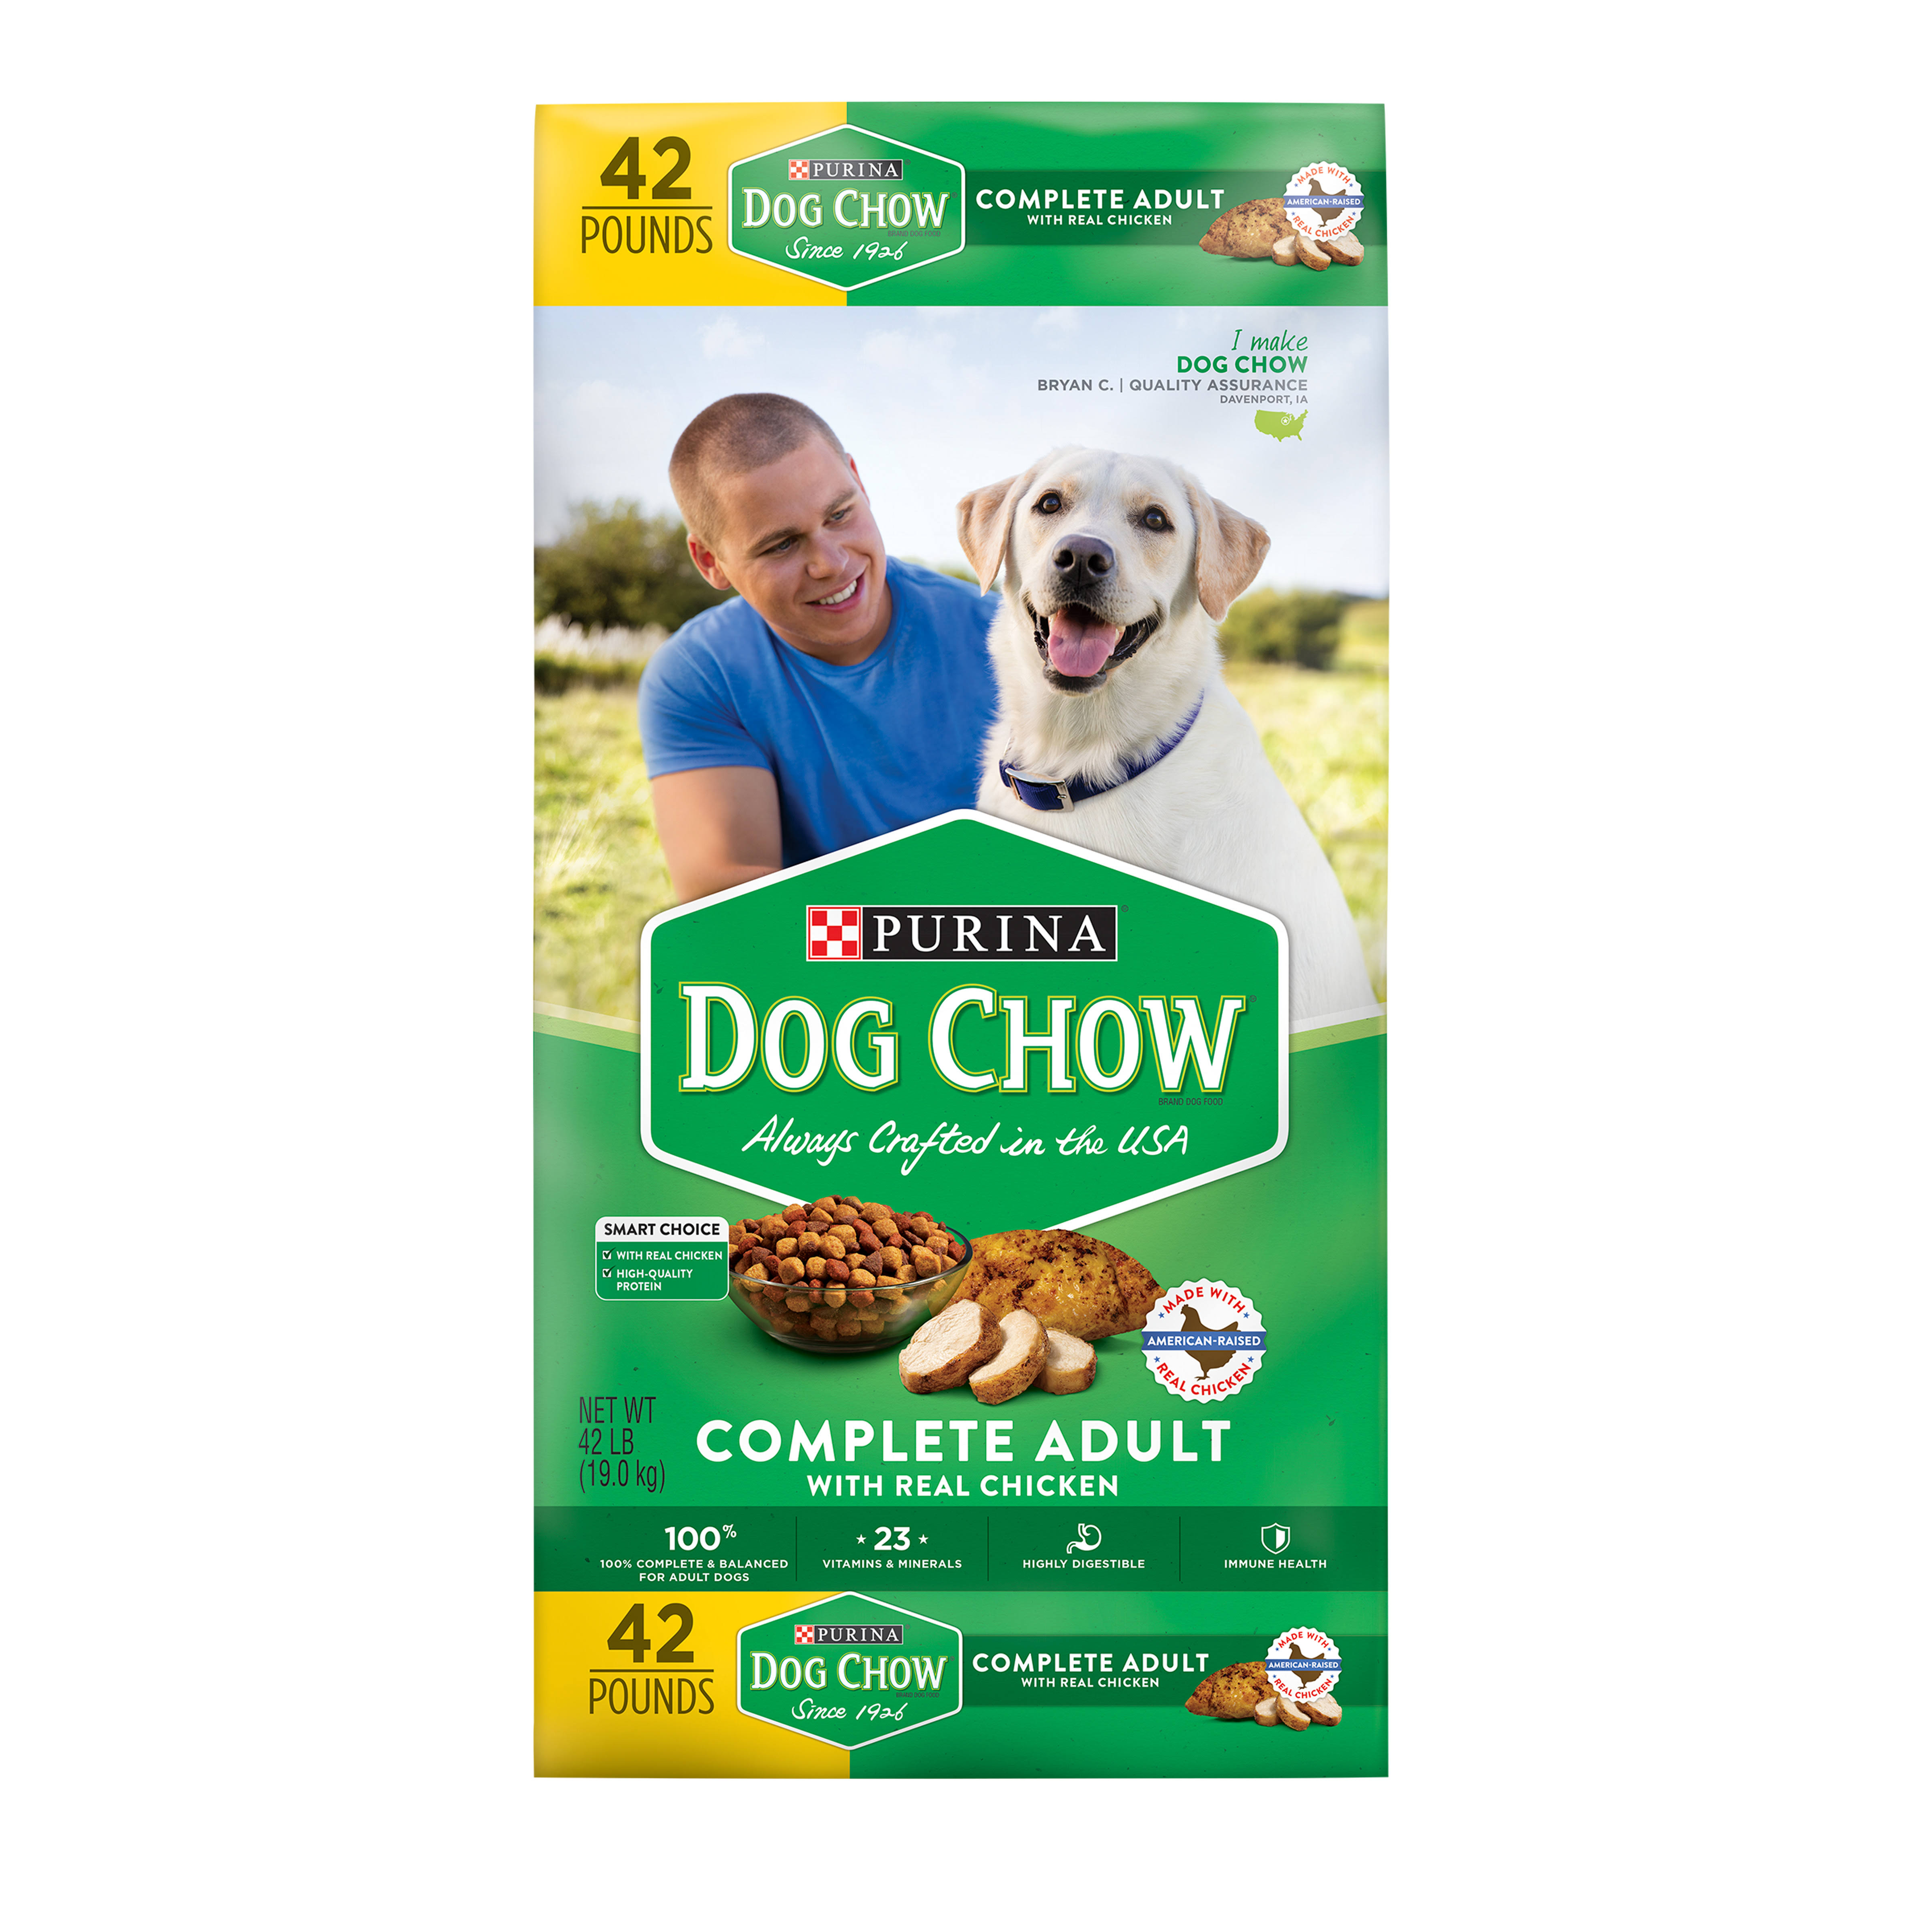 Purina Dog Chow Complete Adult Dog Food - 19kg